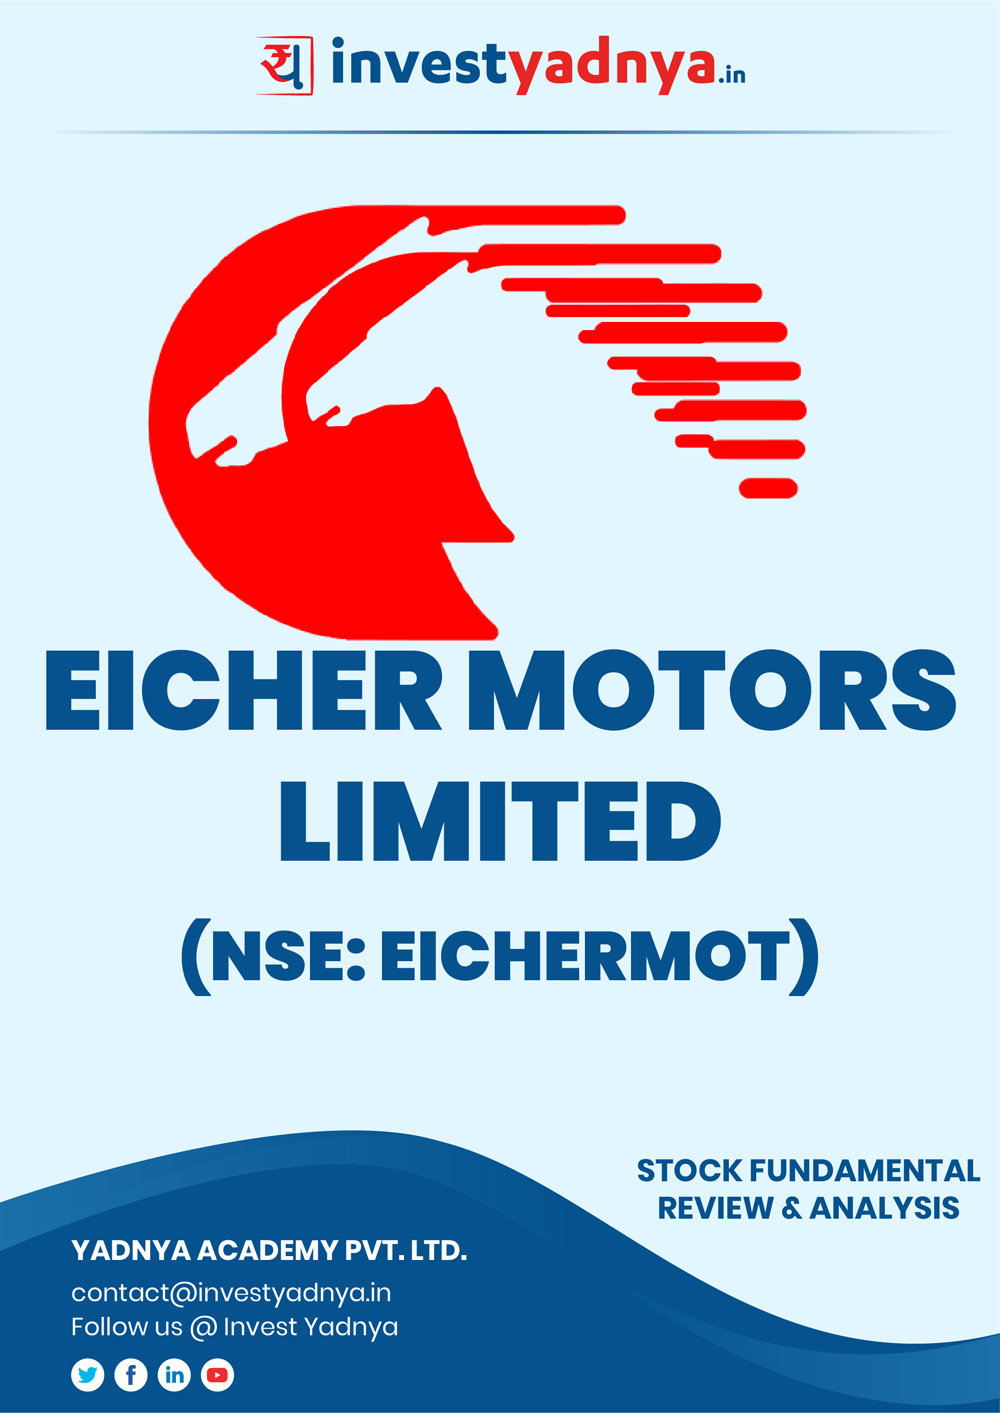 Eicher Motors Ltd Company/Stock Review & Analysis based on Q32018-19 and FY2017 18 data. The book contains Fundamental Analysis of the company considering both Quantitative (Financial) and Qualitative Parameters.